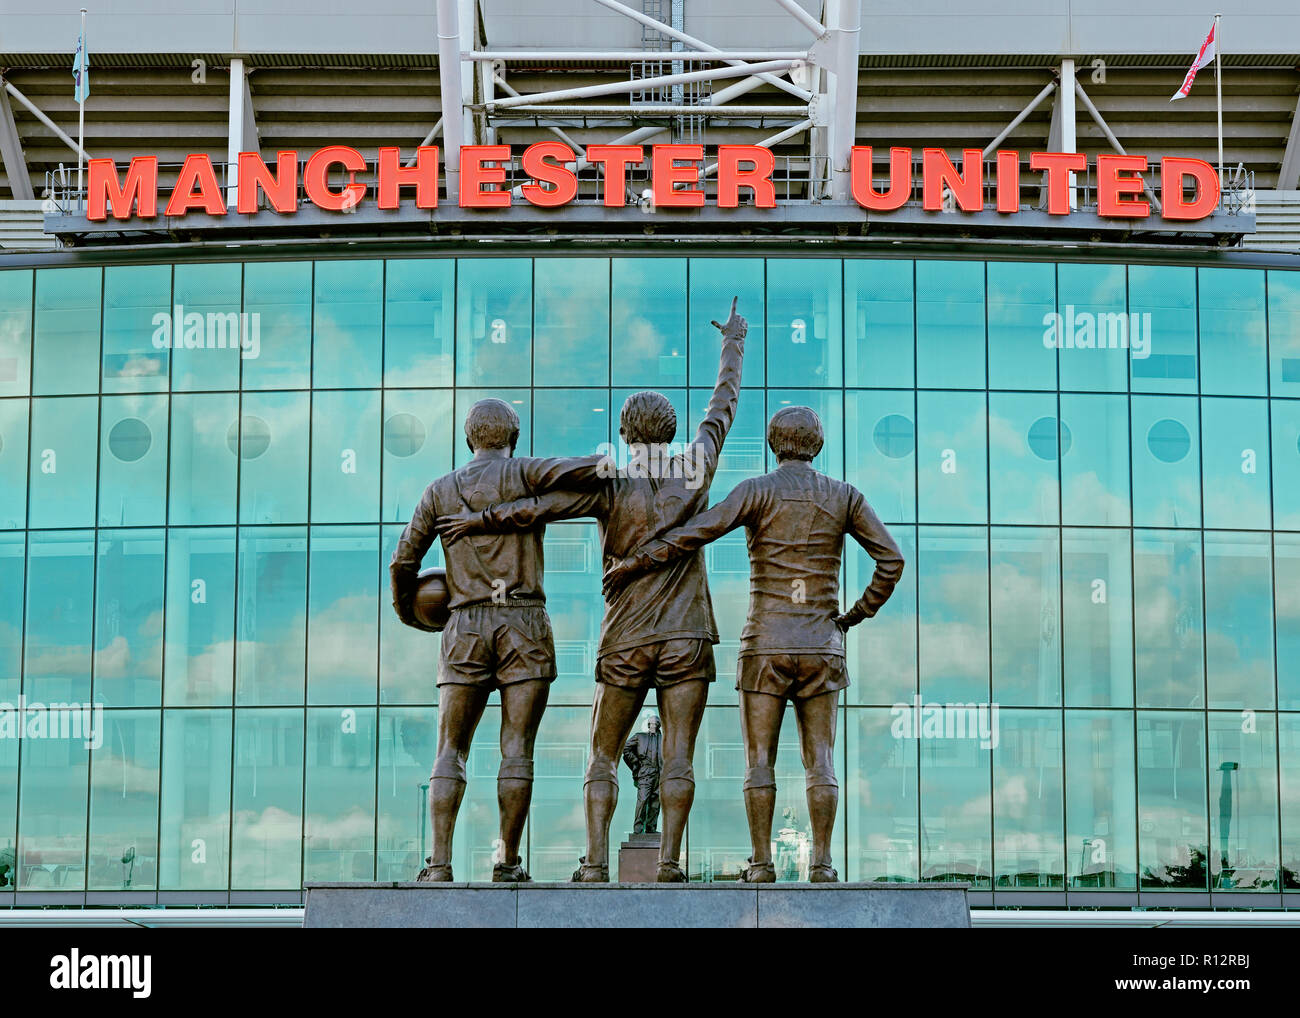 El estadio de Old Trafford, casa del Manchester United Football Club, England, Reino Unido Imagen De Stock